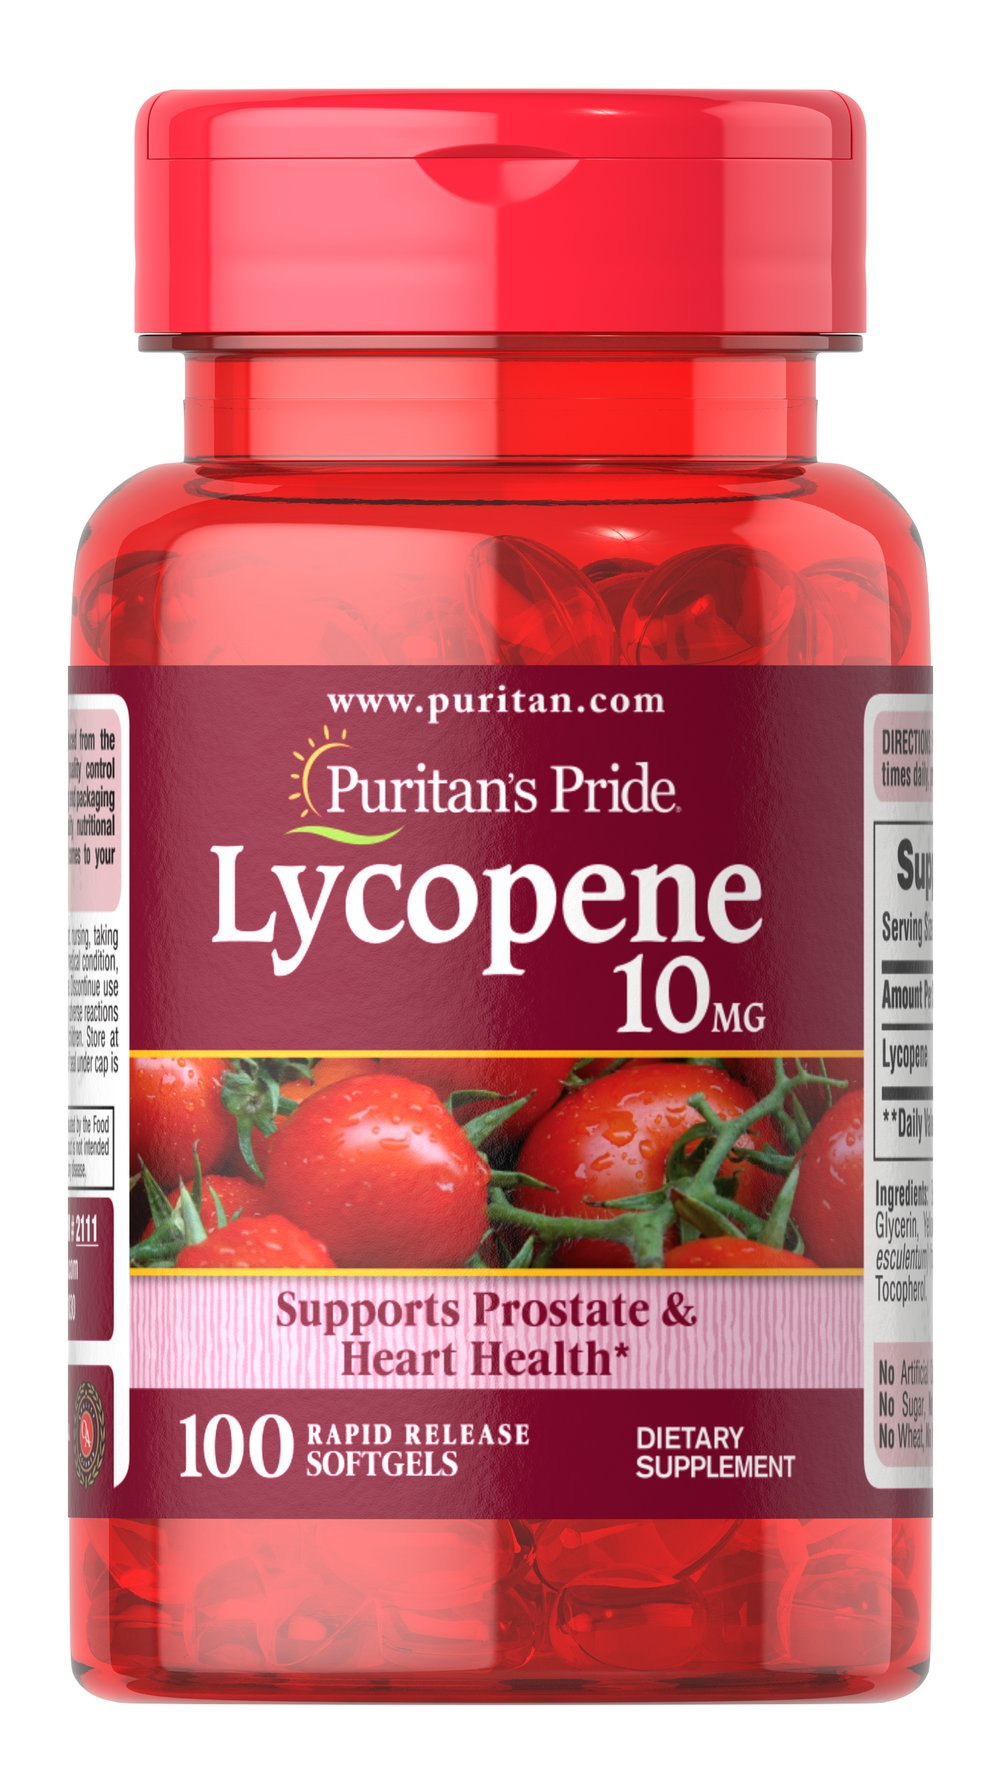 Lycopene 10 mg Thumbnail Alternate Bottle View